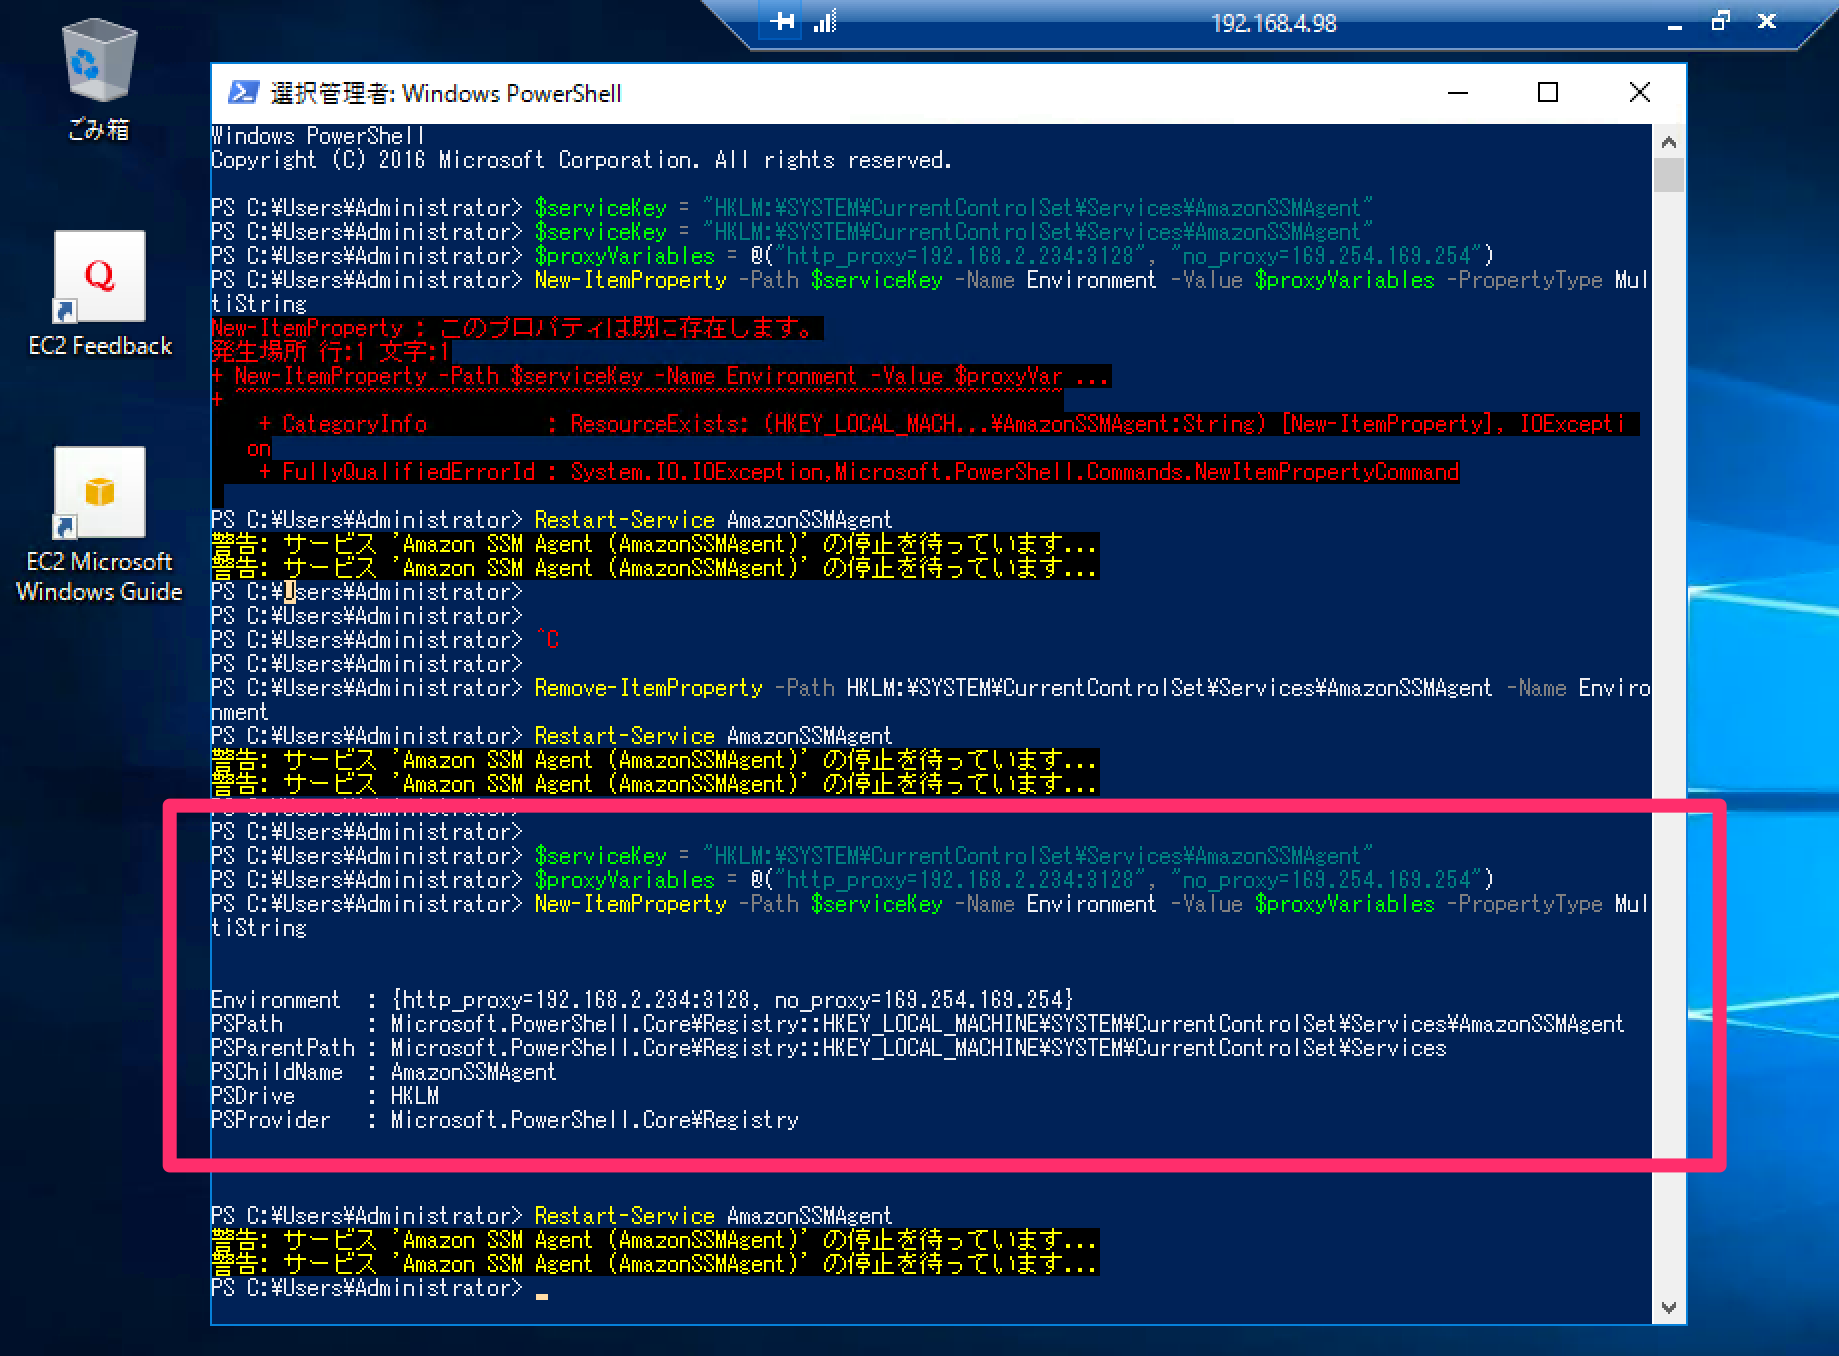 07-powershell-admin-New-ItemProperty